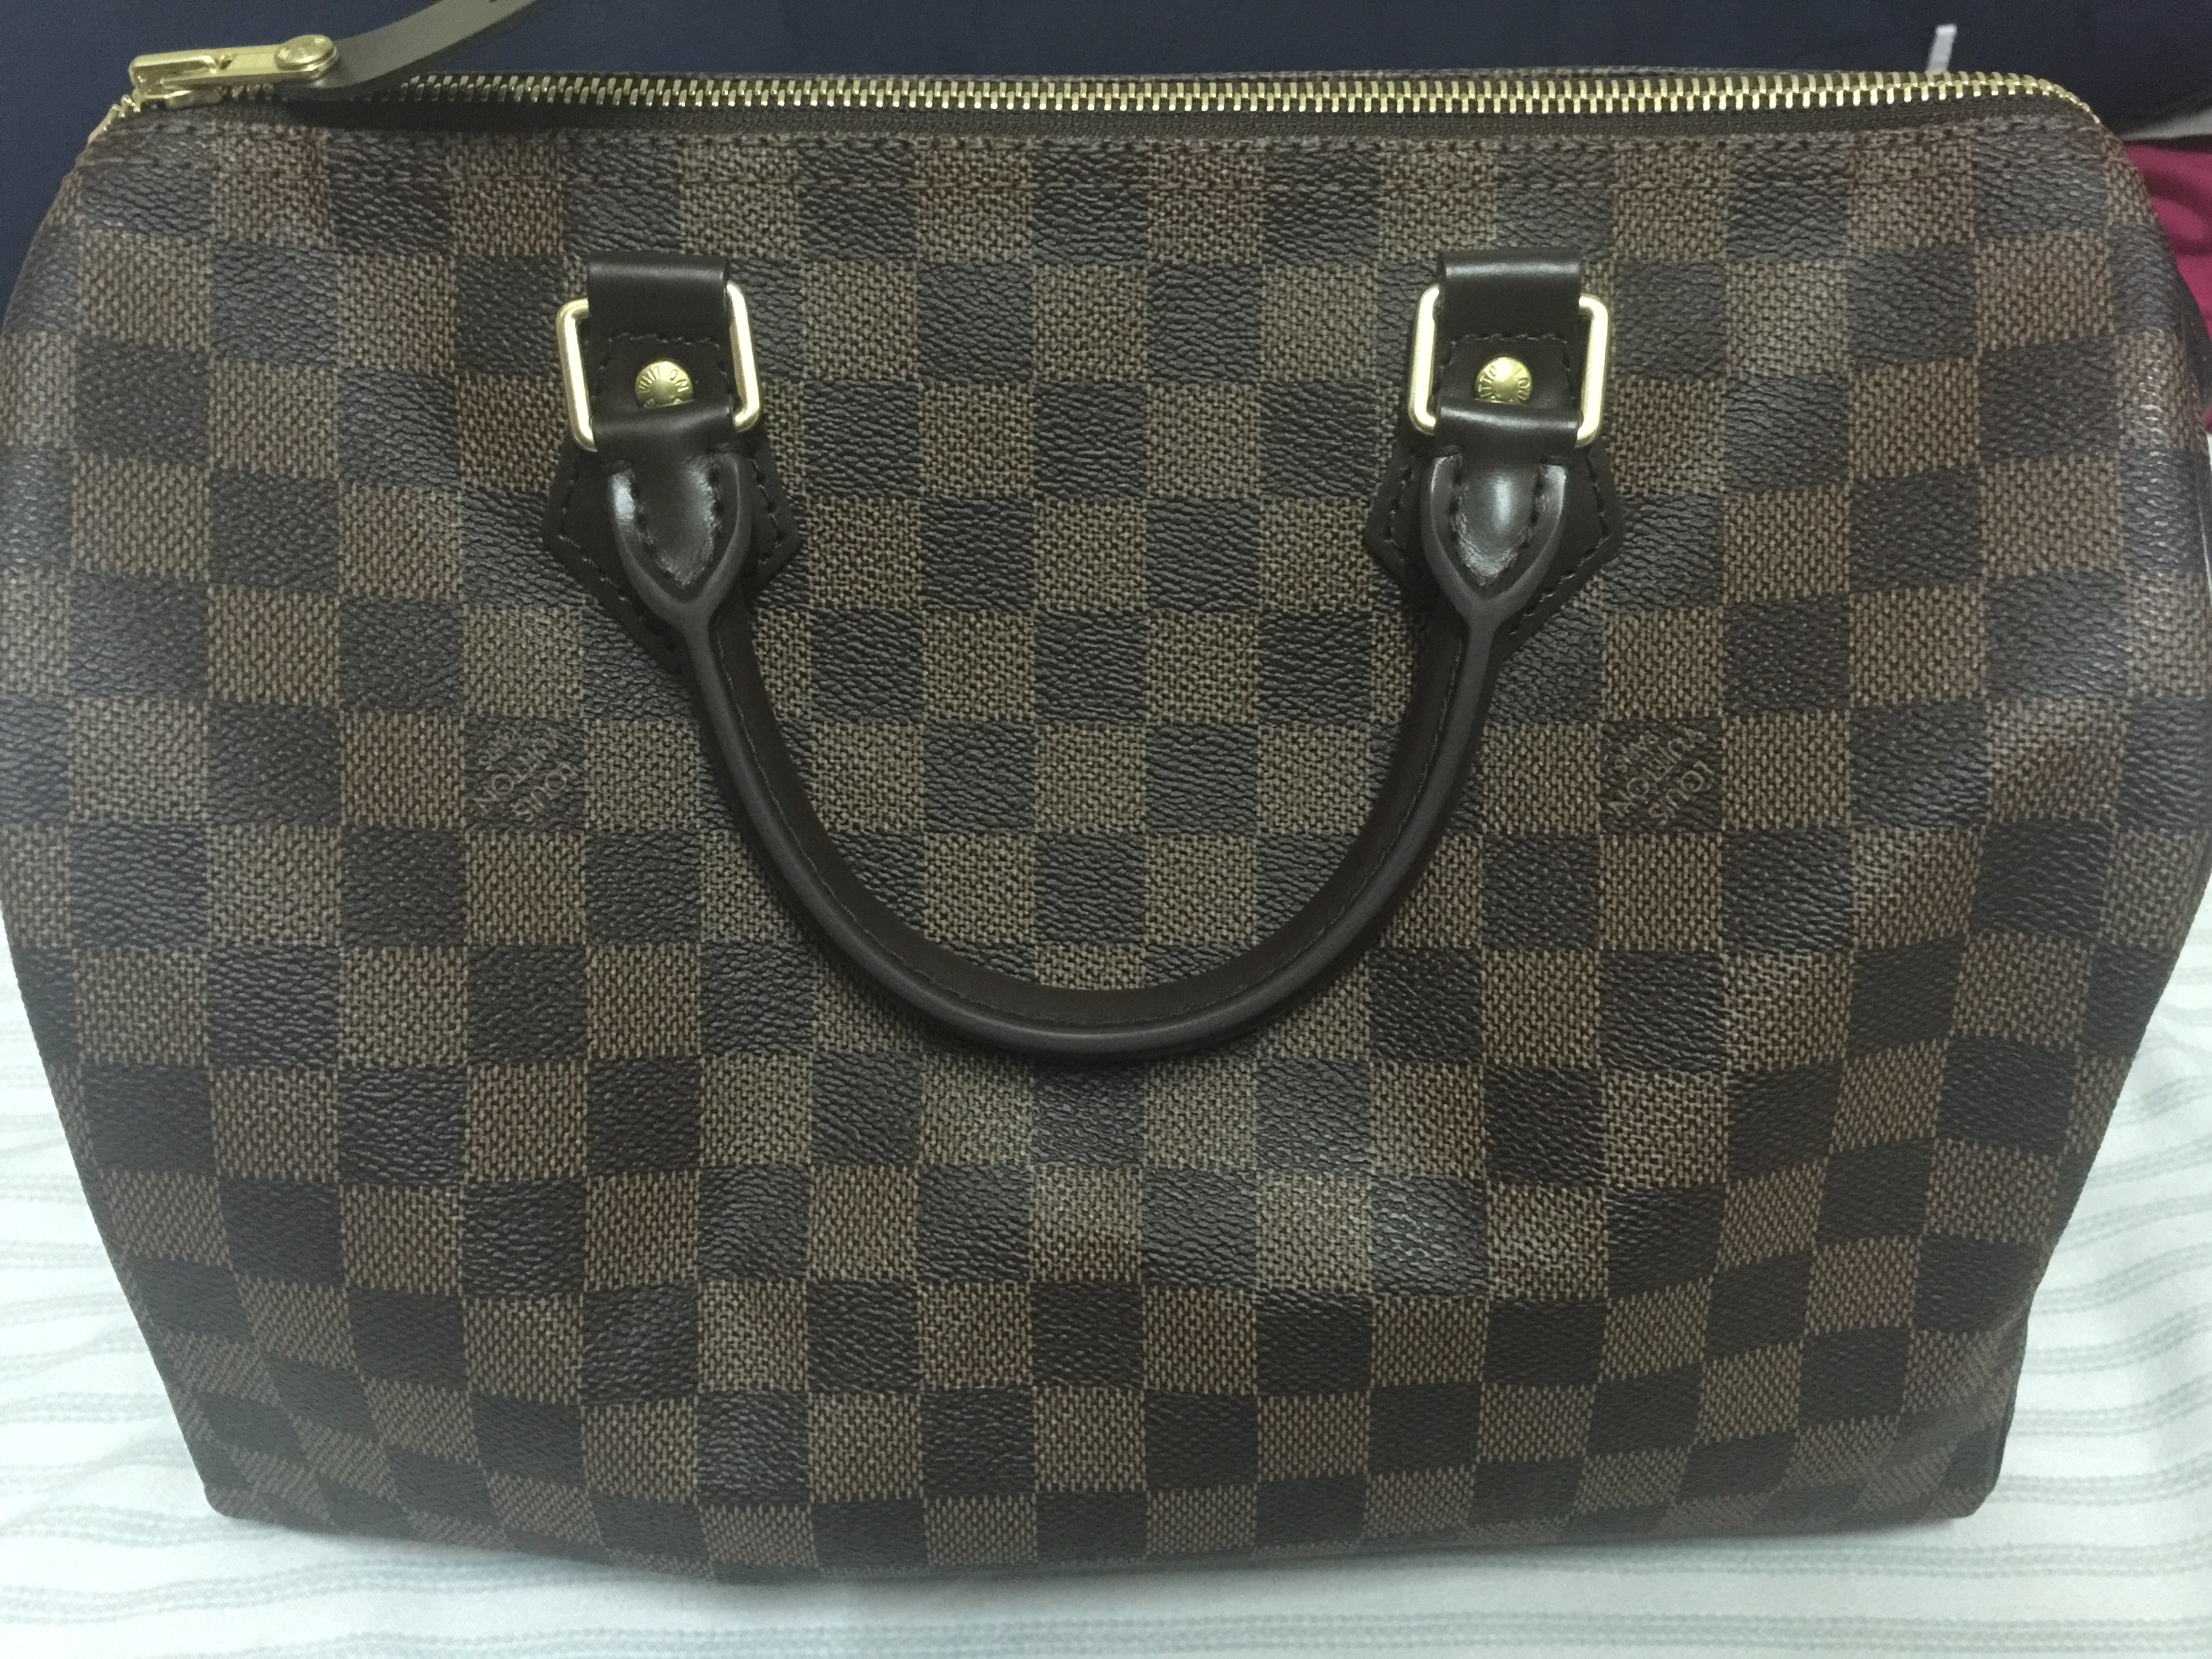 8716e1ce8257 It is speedy 30 damier ebene size 30. The bag is new. The seller advised me  to go to lv store for heat stamping for authentication.